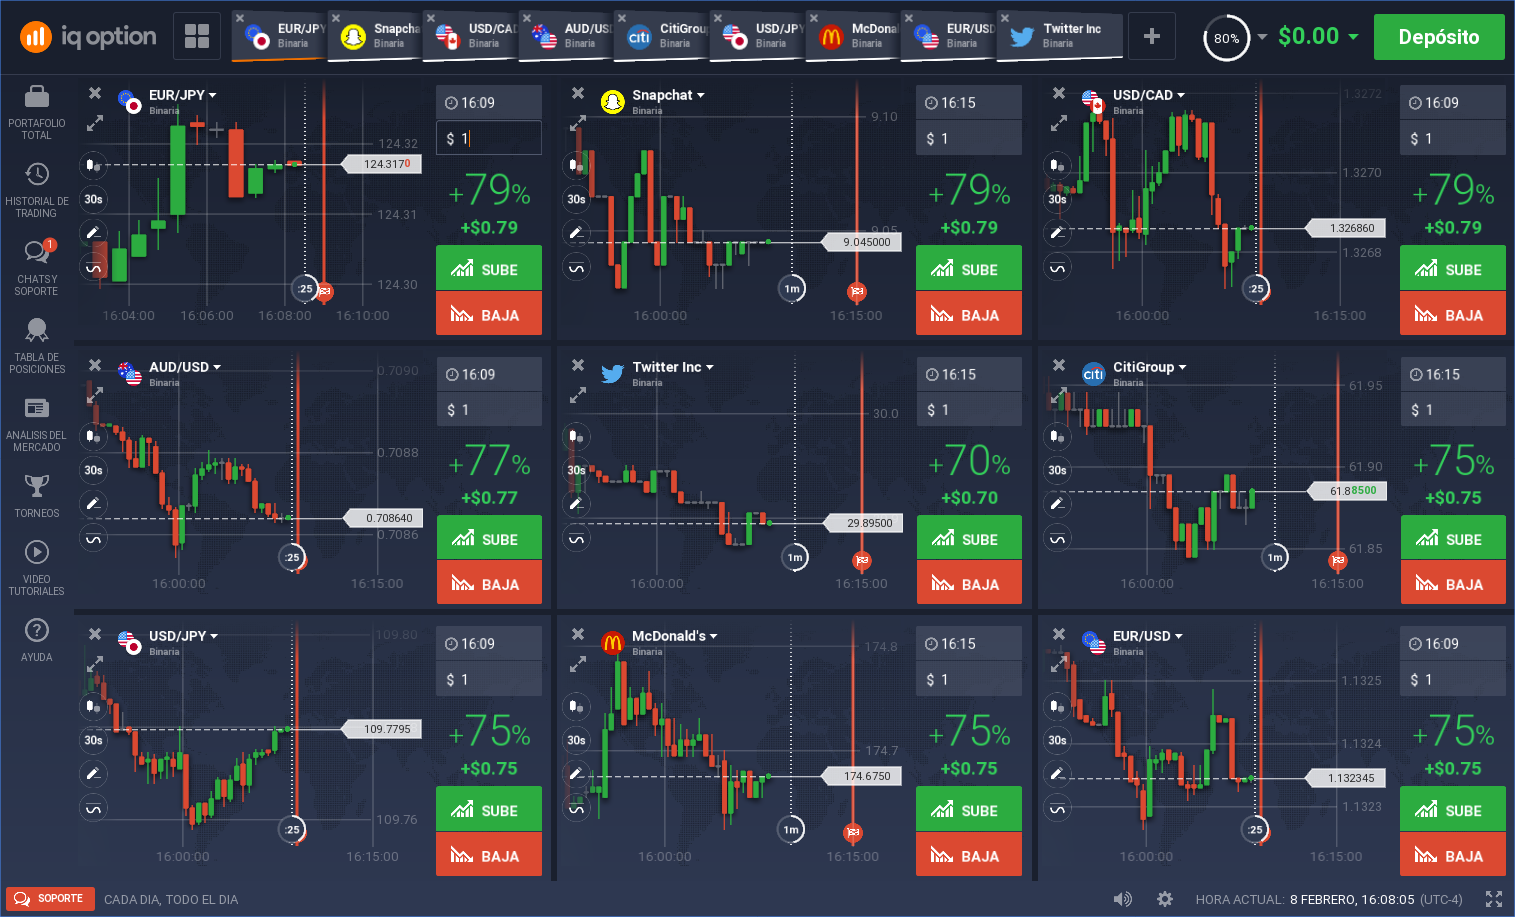 multigraficos iq option